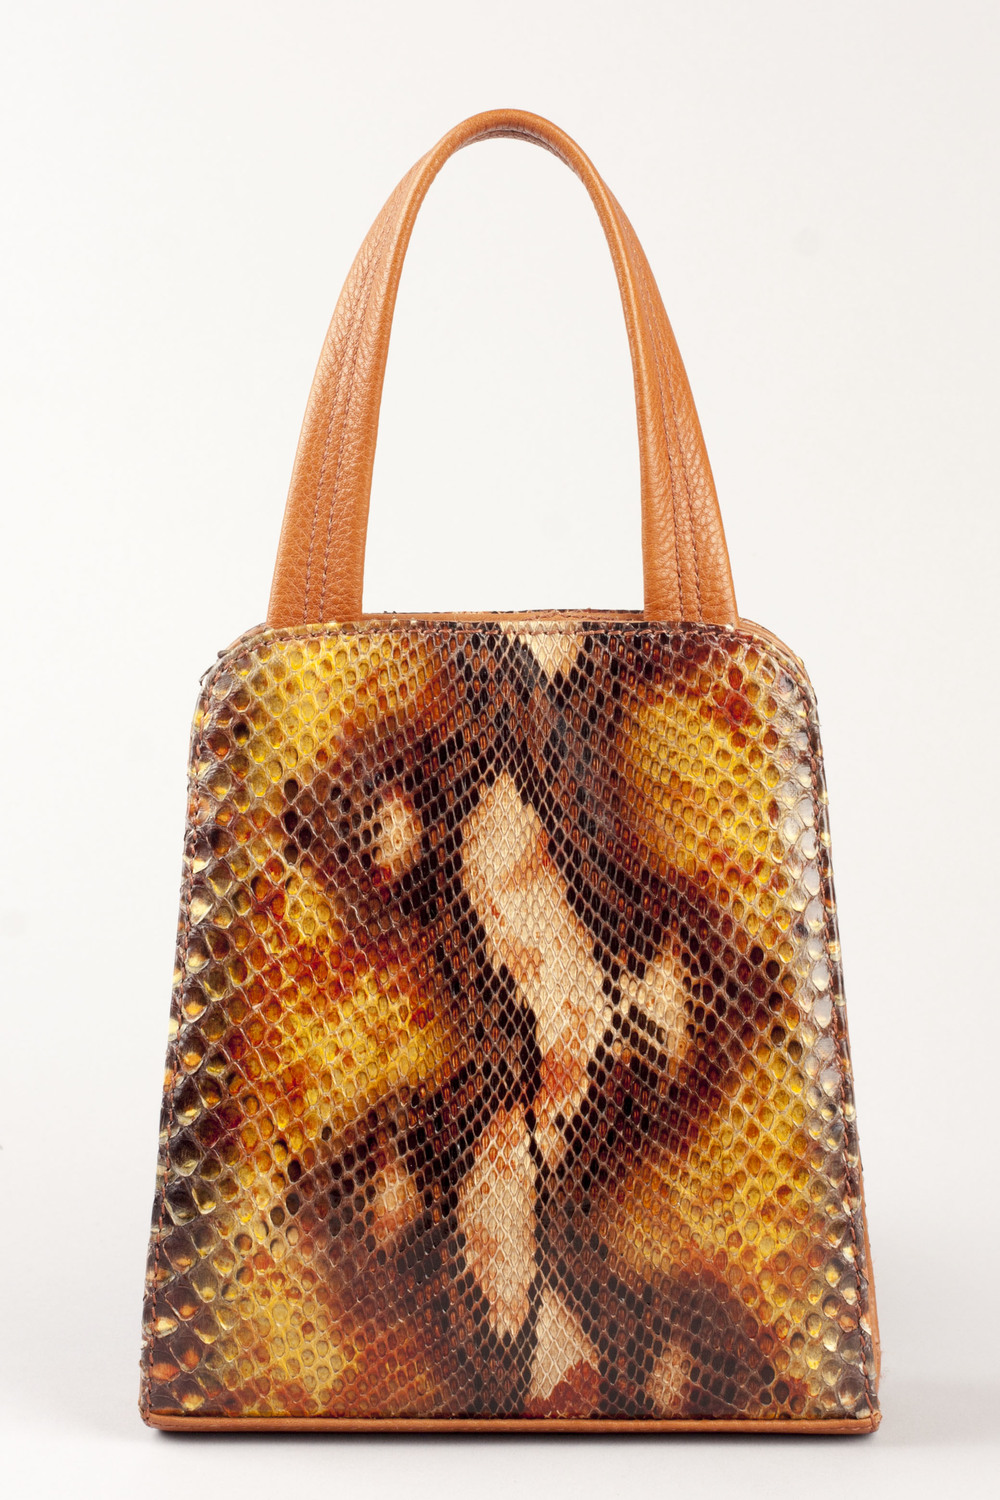 Painted Python Day Bag - Caramel